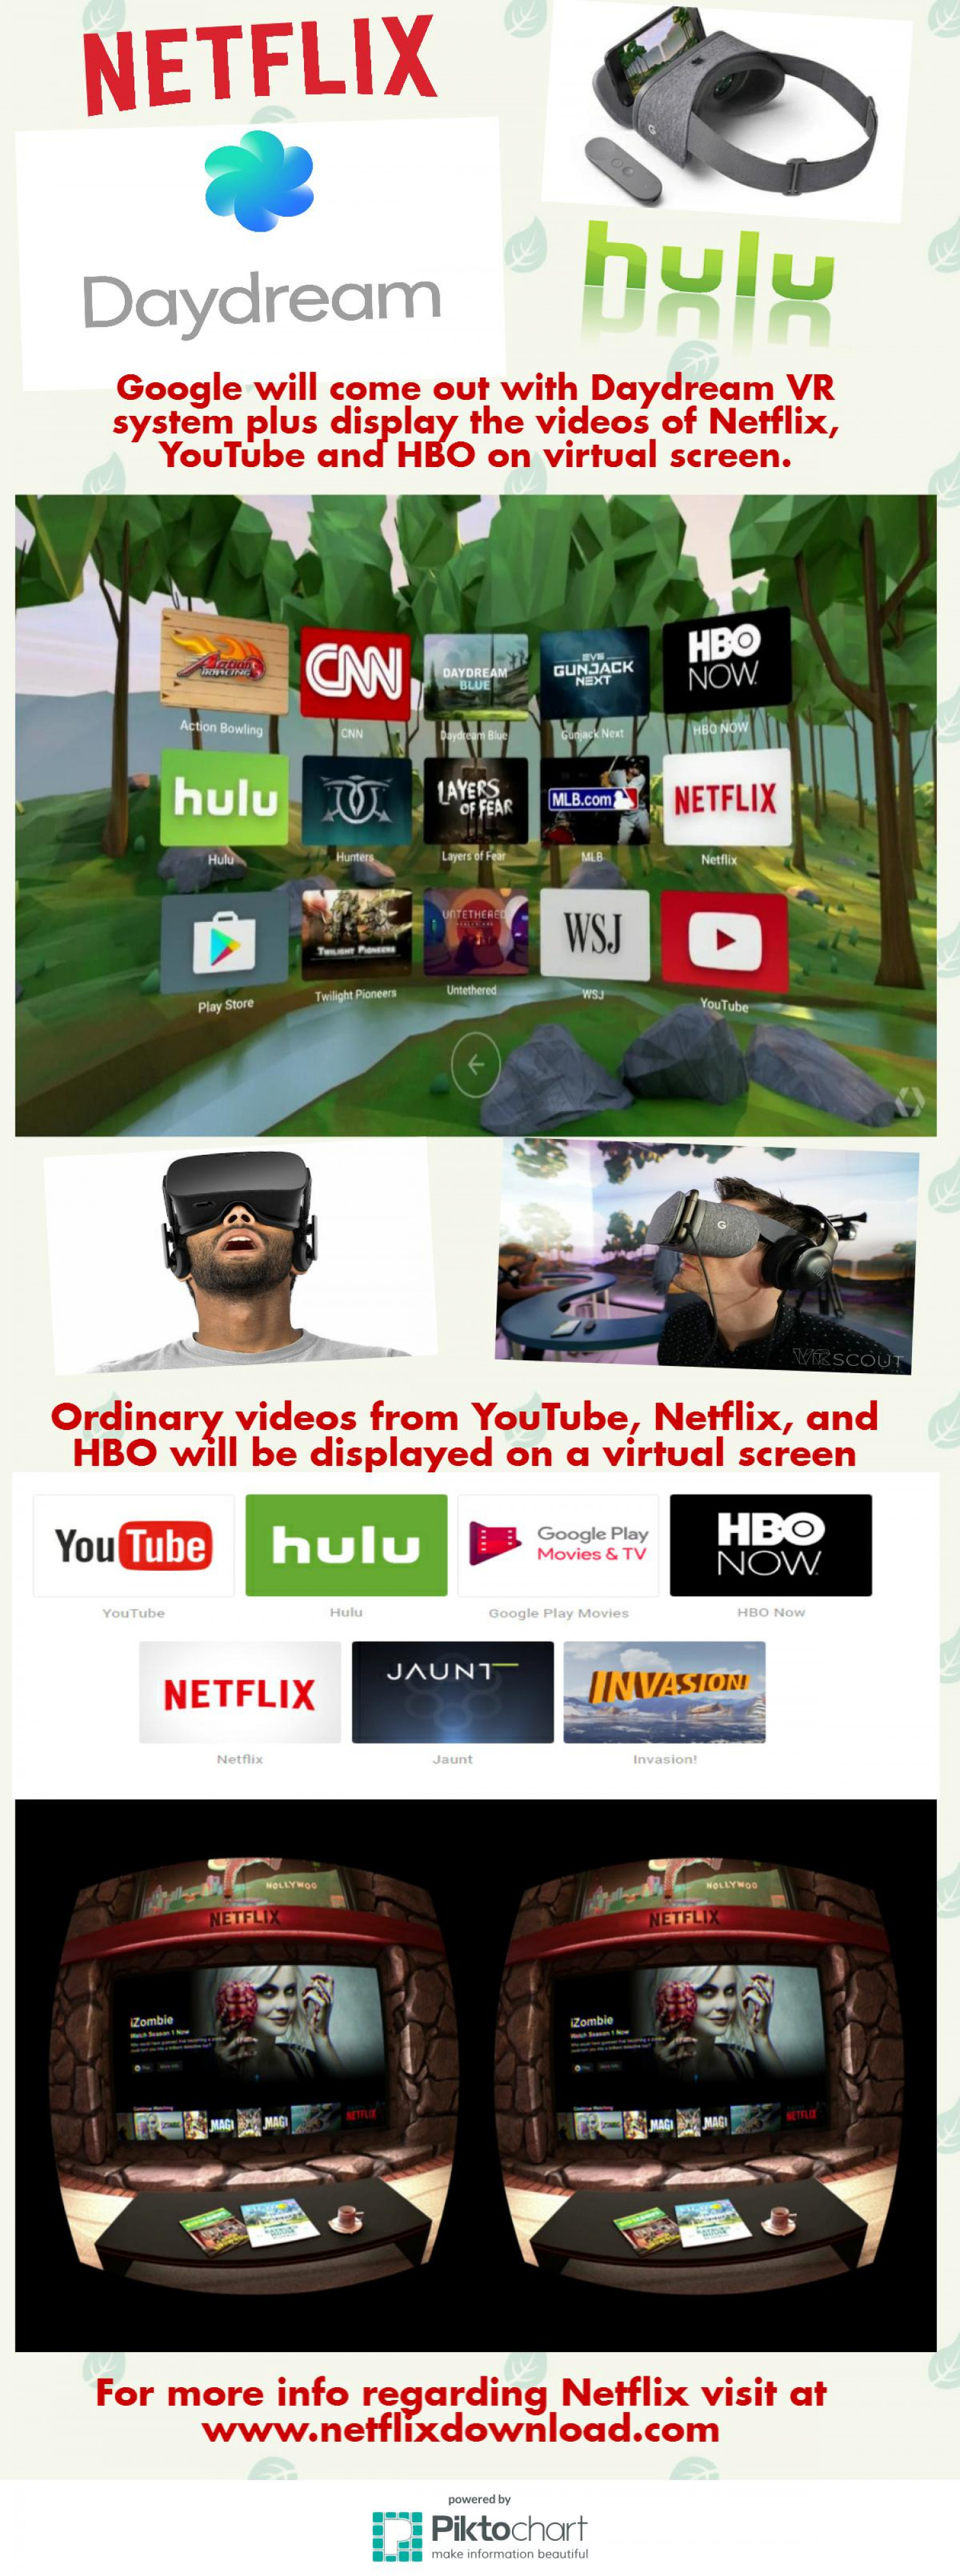 Netflix Videos will be displayed on Google Daydream VR Infographic